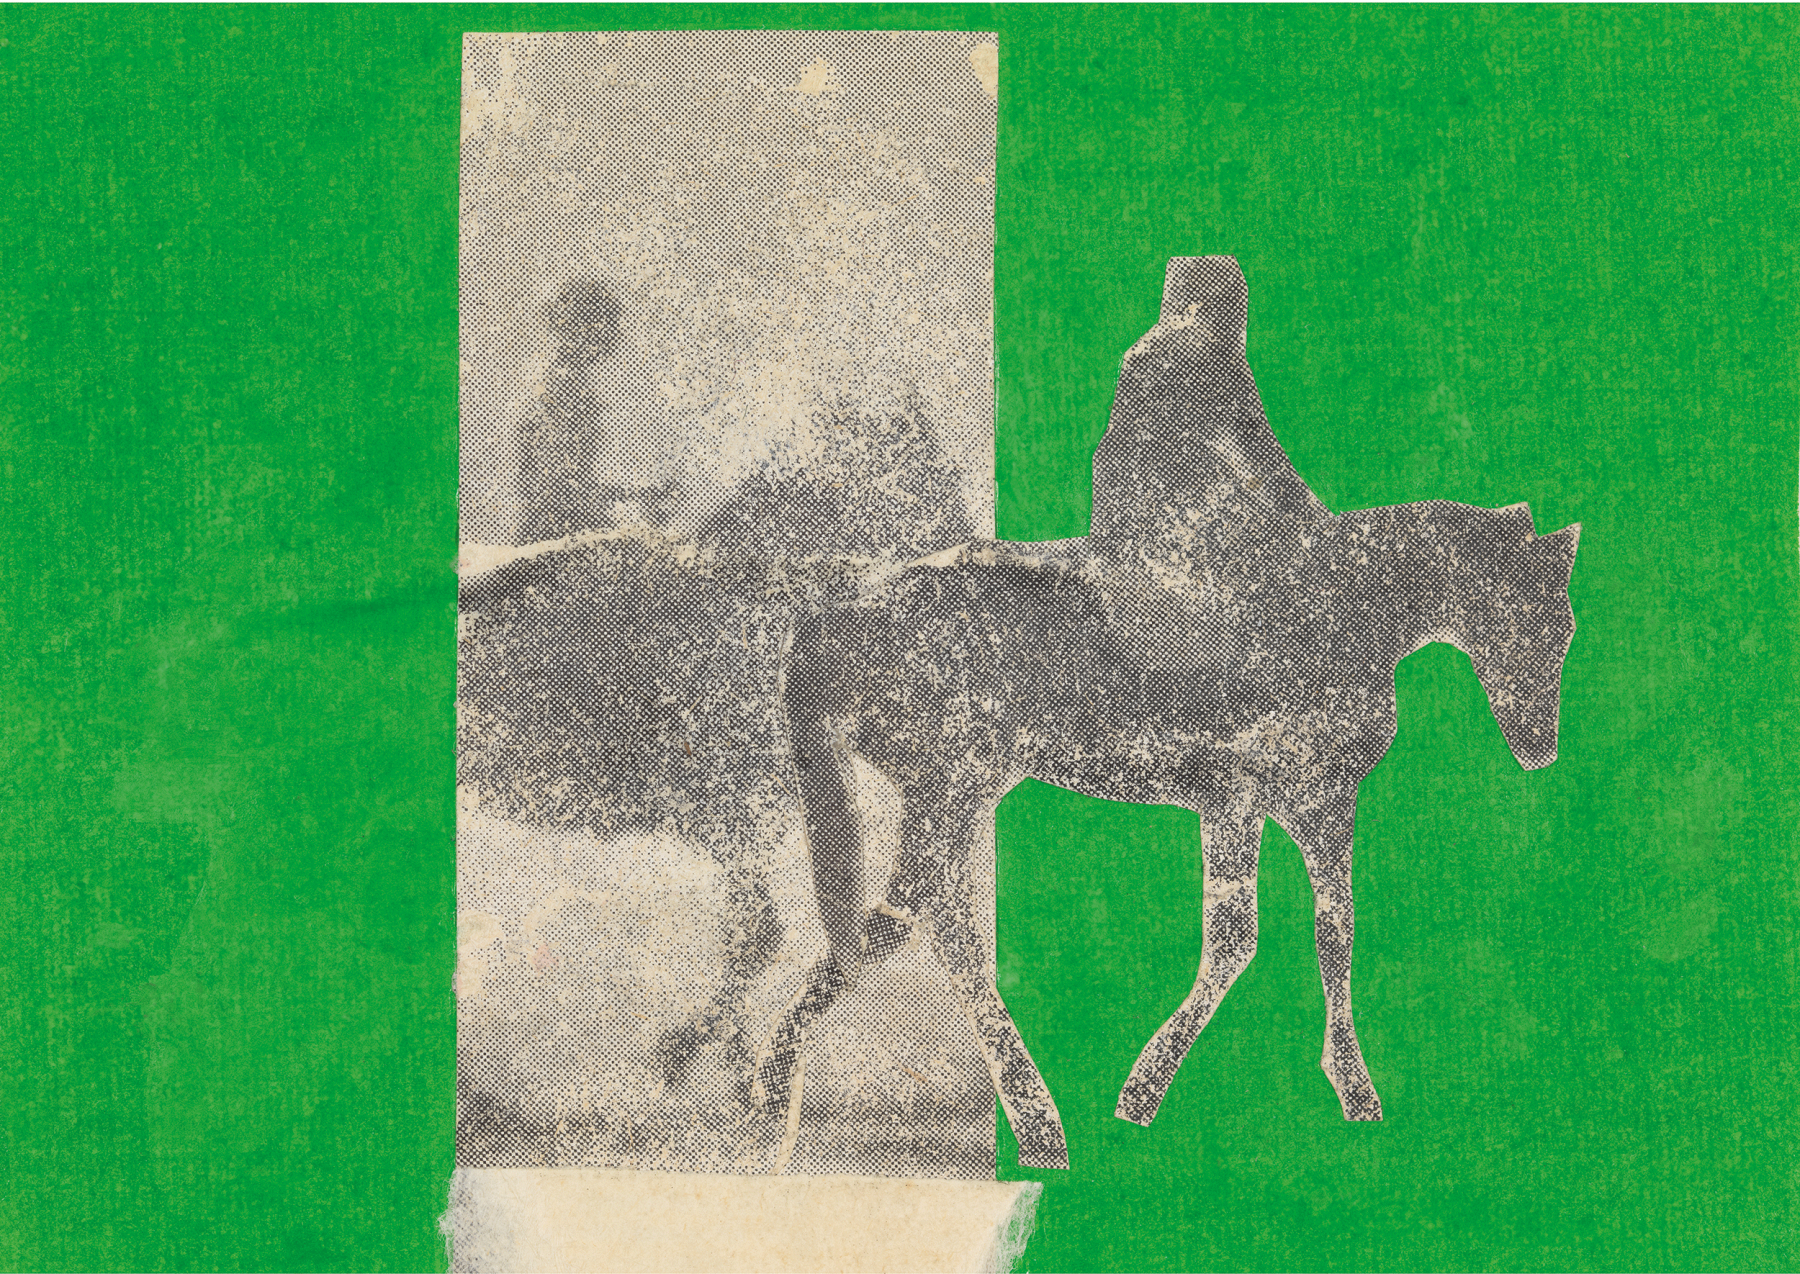 Saddled, 1960, Paper collage